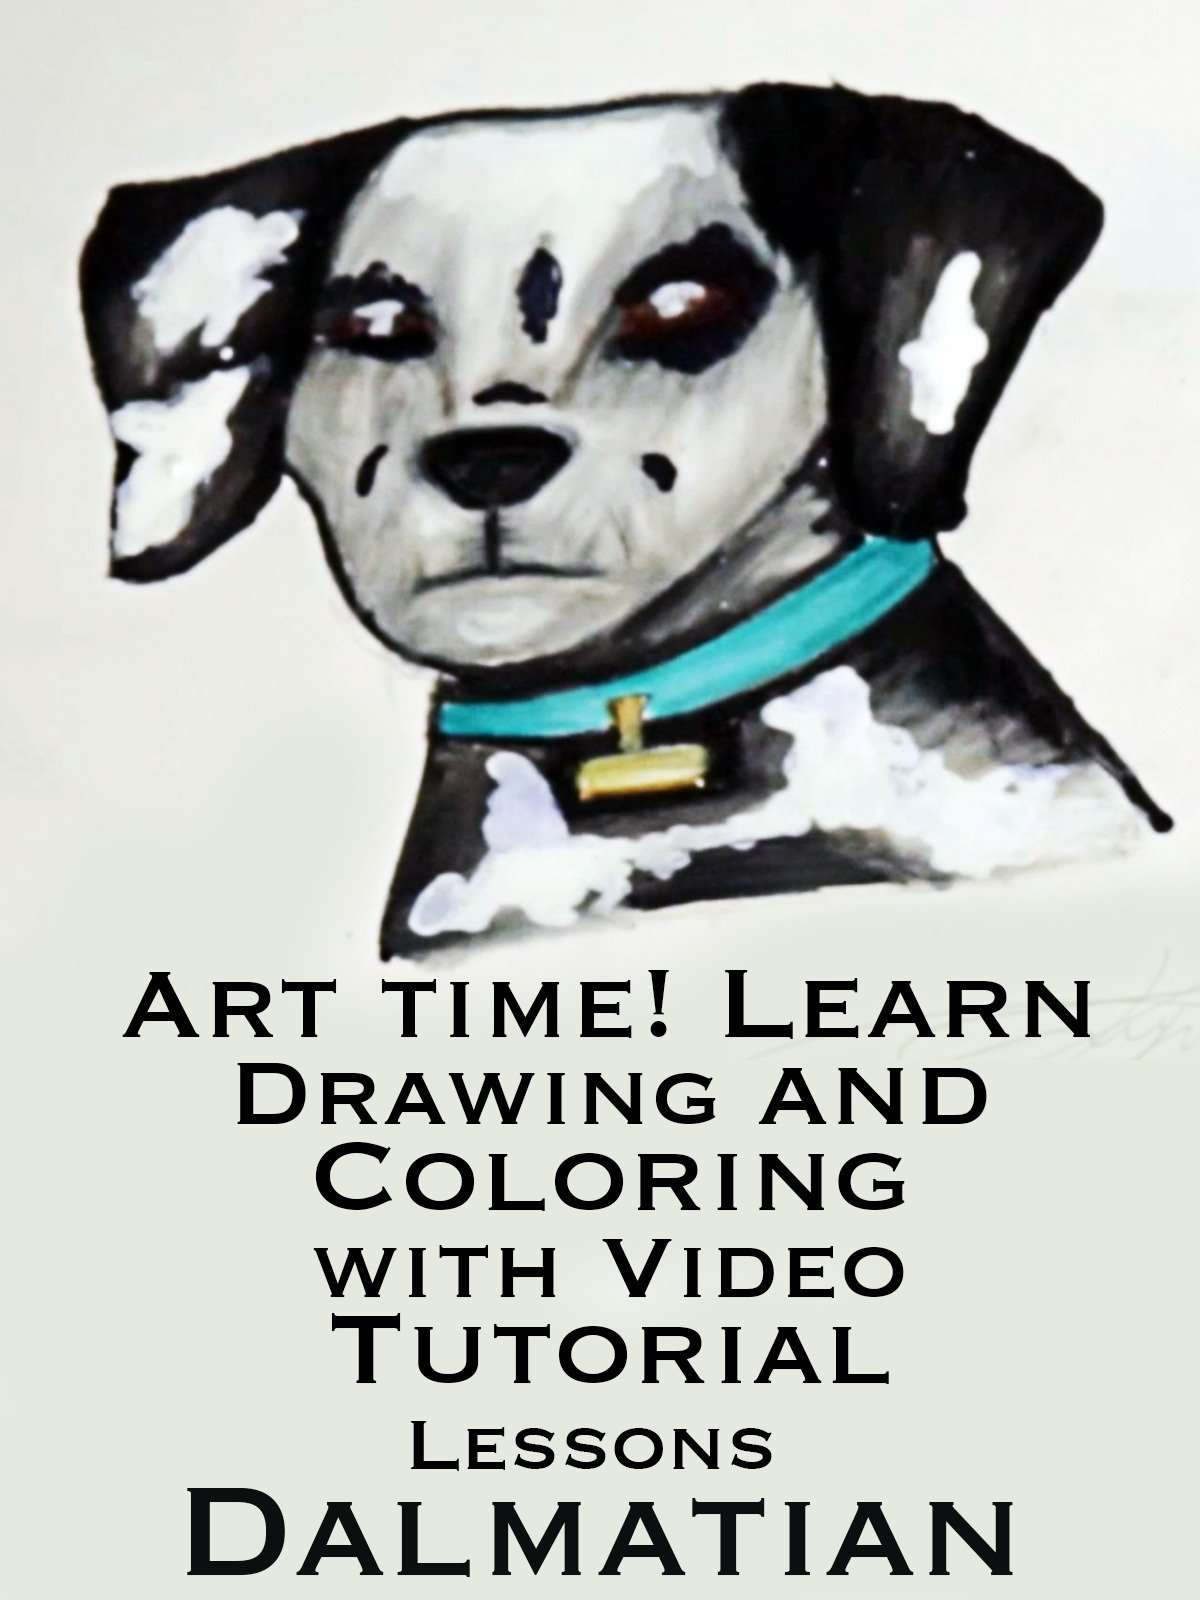 Art Time! Learn Drawing and Coloring with Video Tutorial Lessons Dalmatian